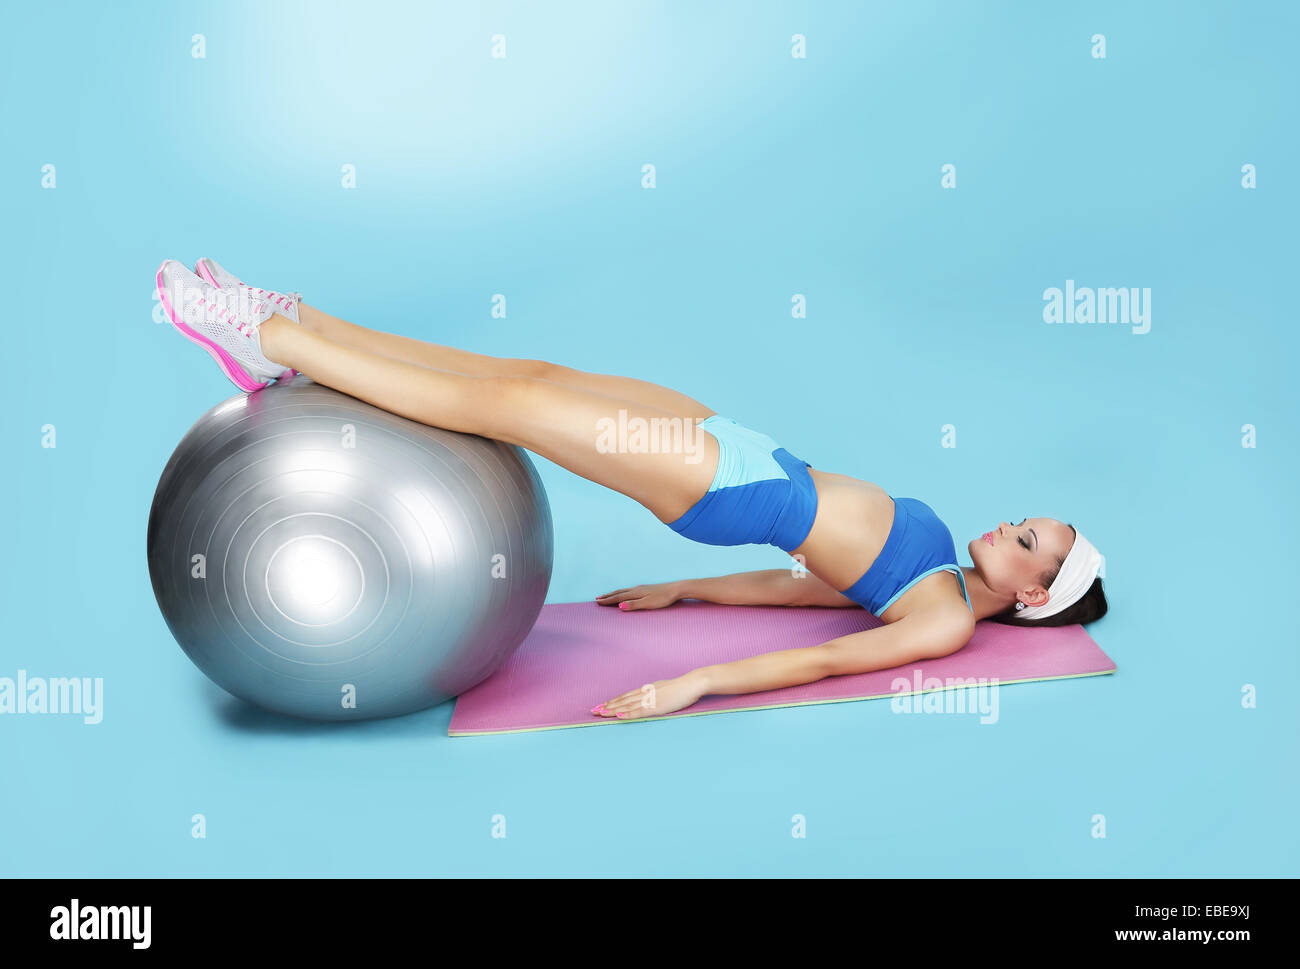 Exercice abdominal. Sporty Woman with Fitness Ball Photo Stock